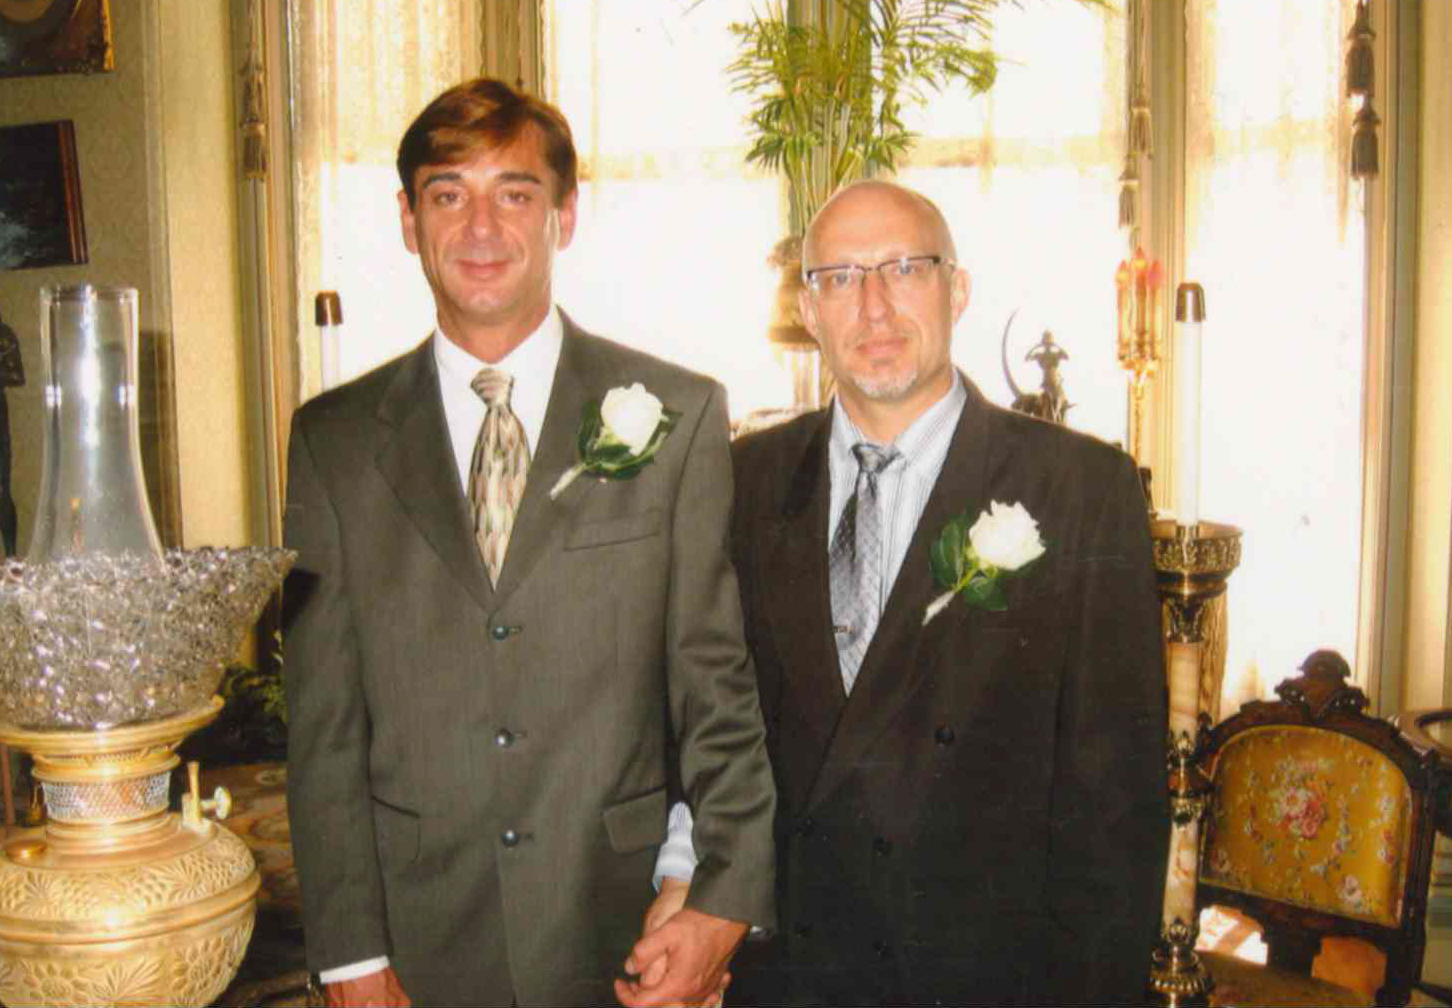 Two men standing with hands clasped, both wearing formal suits